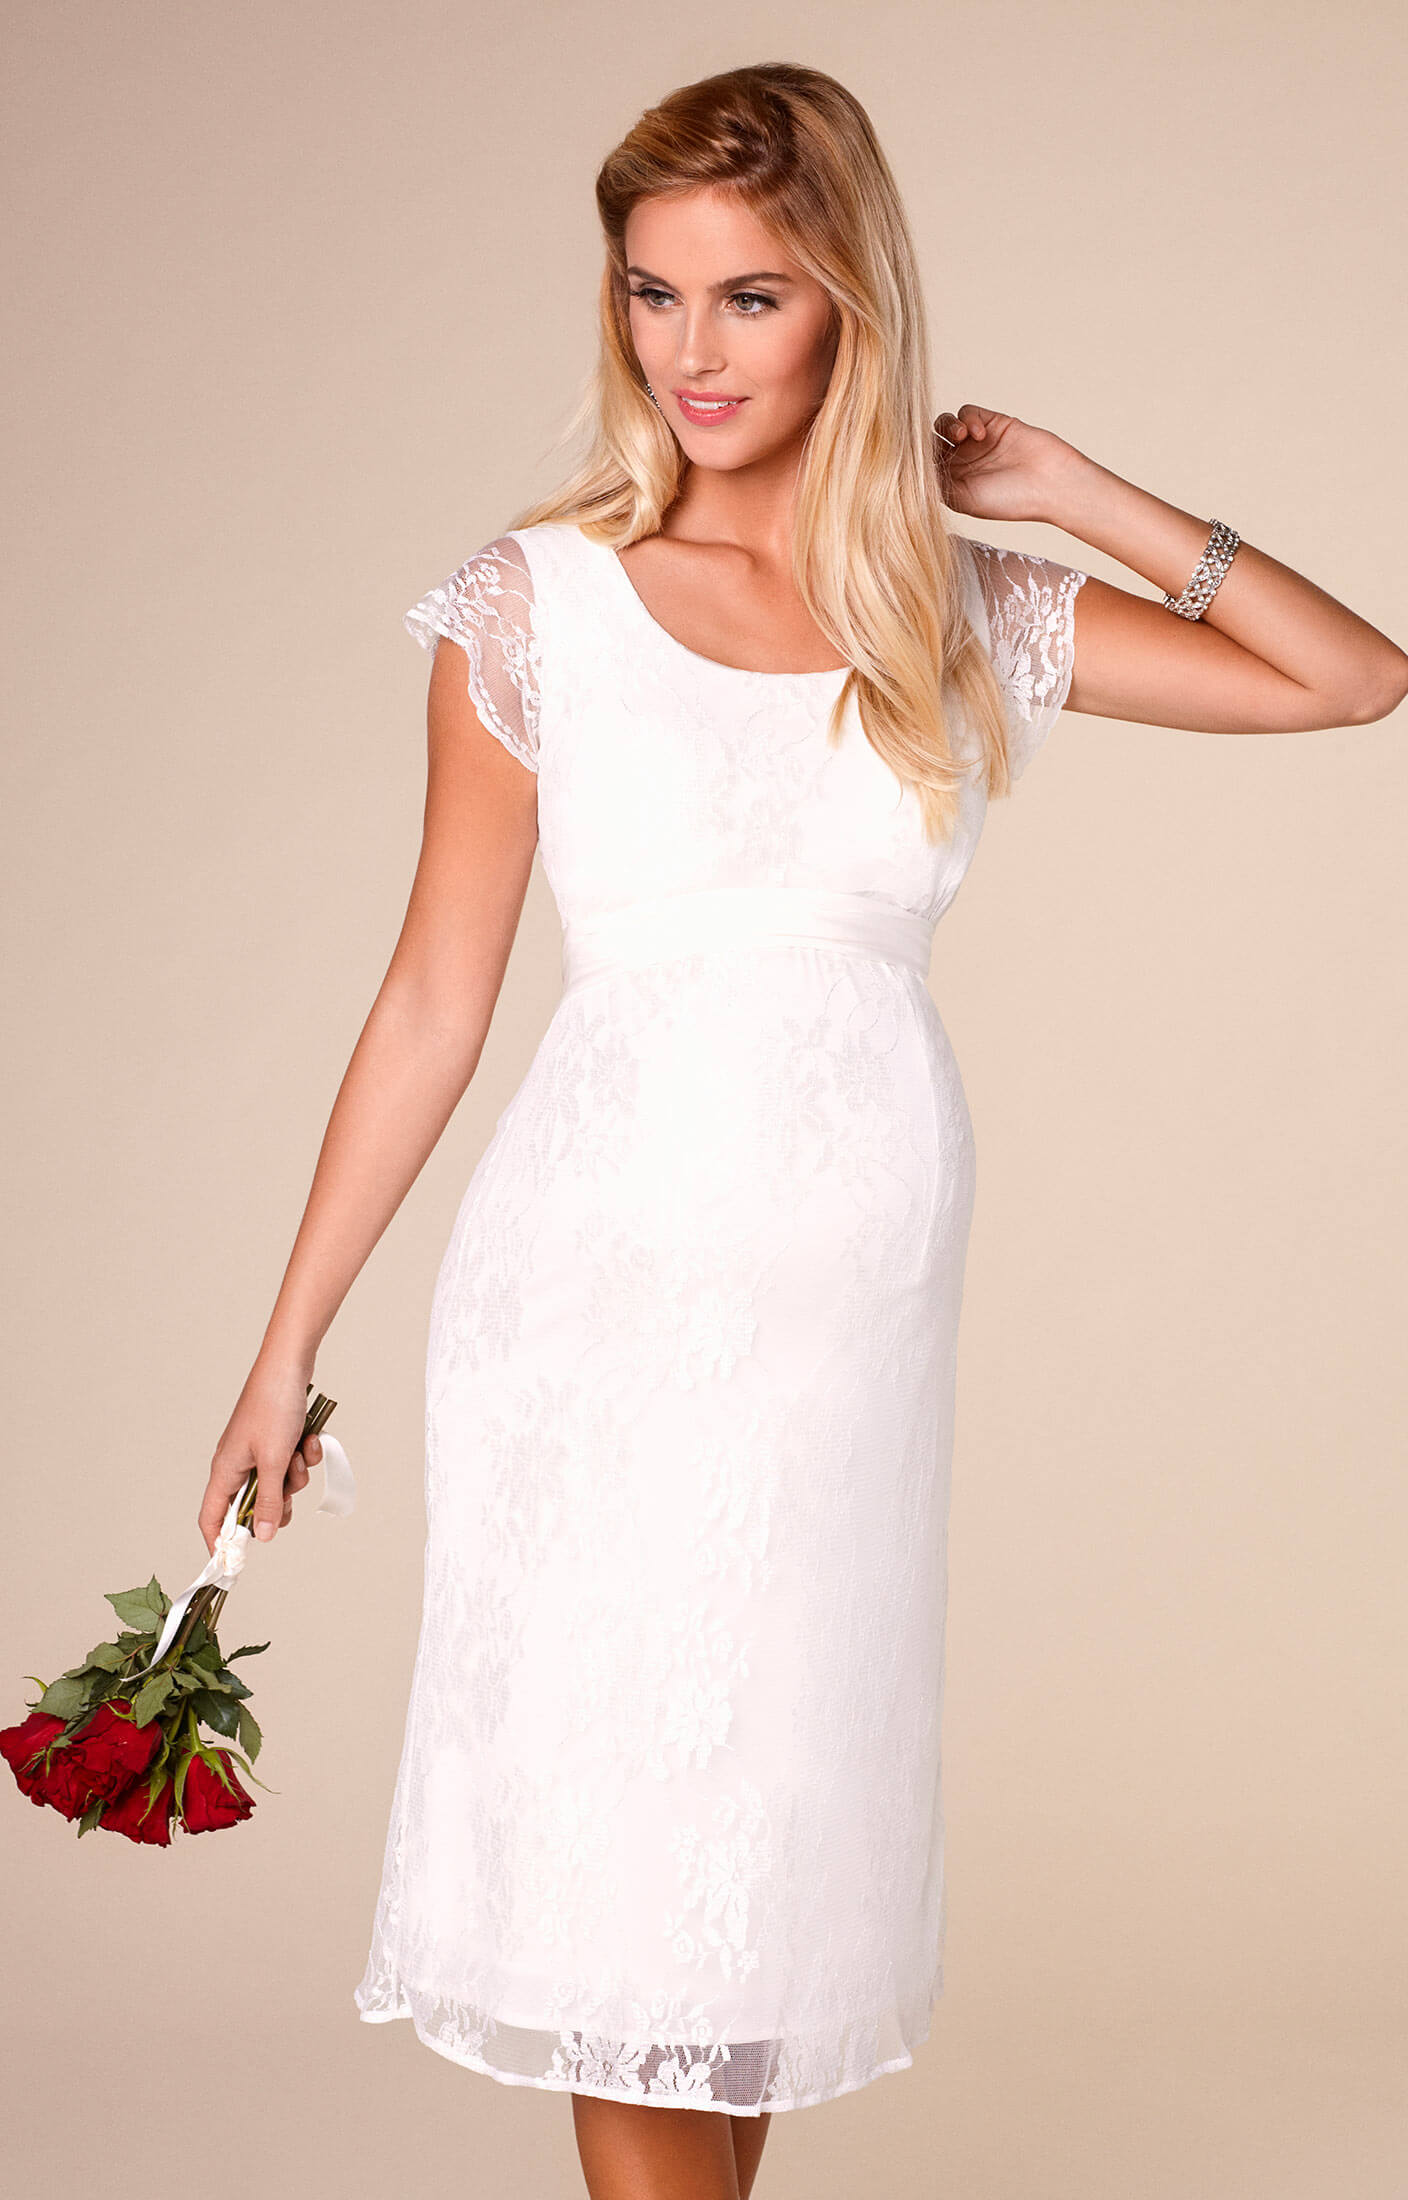 a910f2b4a2739 Nursing Dresses For Weddings & Other Special Occasions By Tiffany Rose